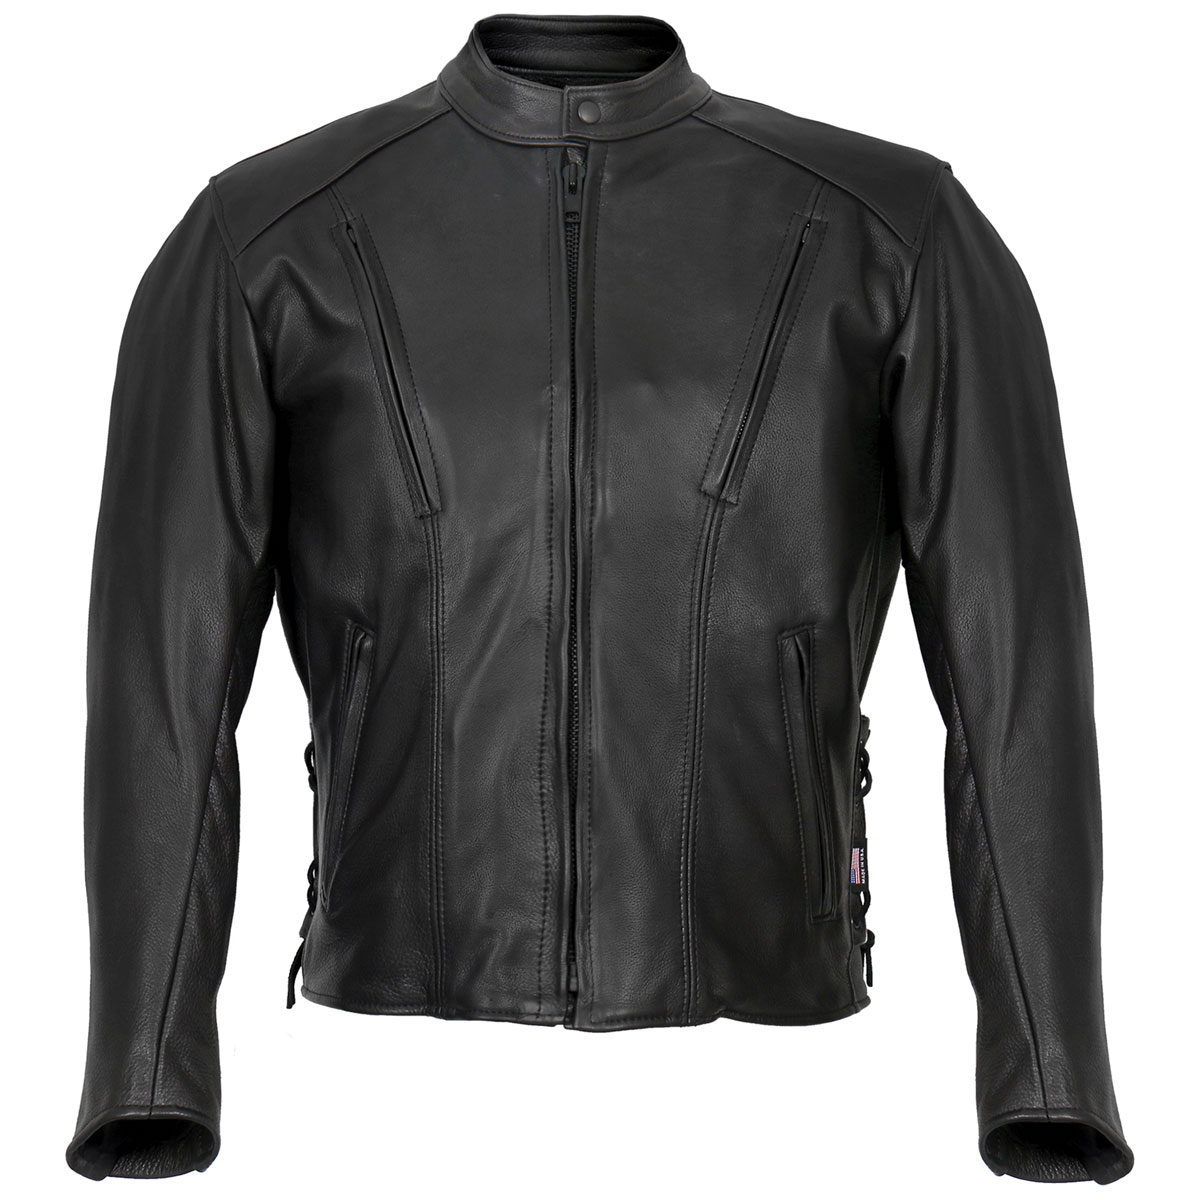 Hot Leathers Men's USA Made Side Lace Black Leather Jacket